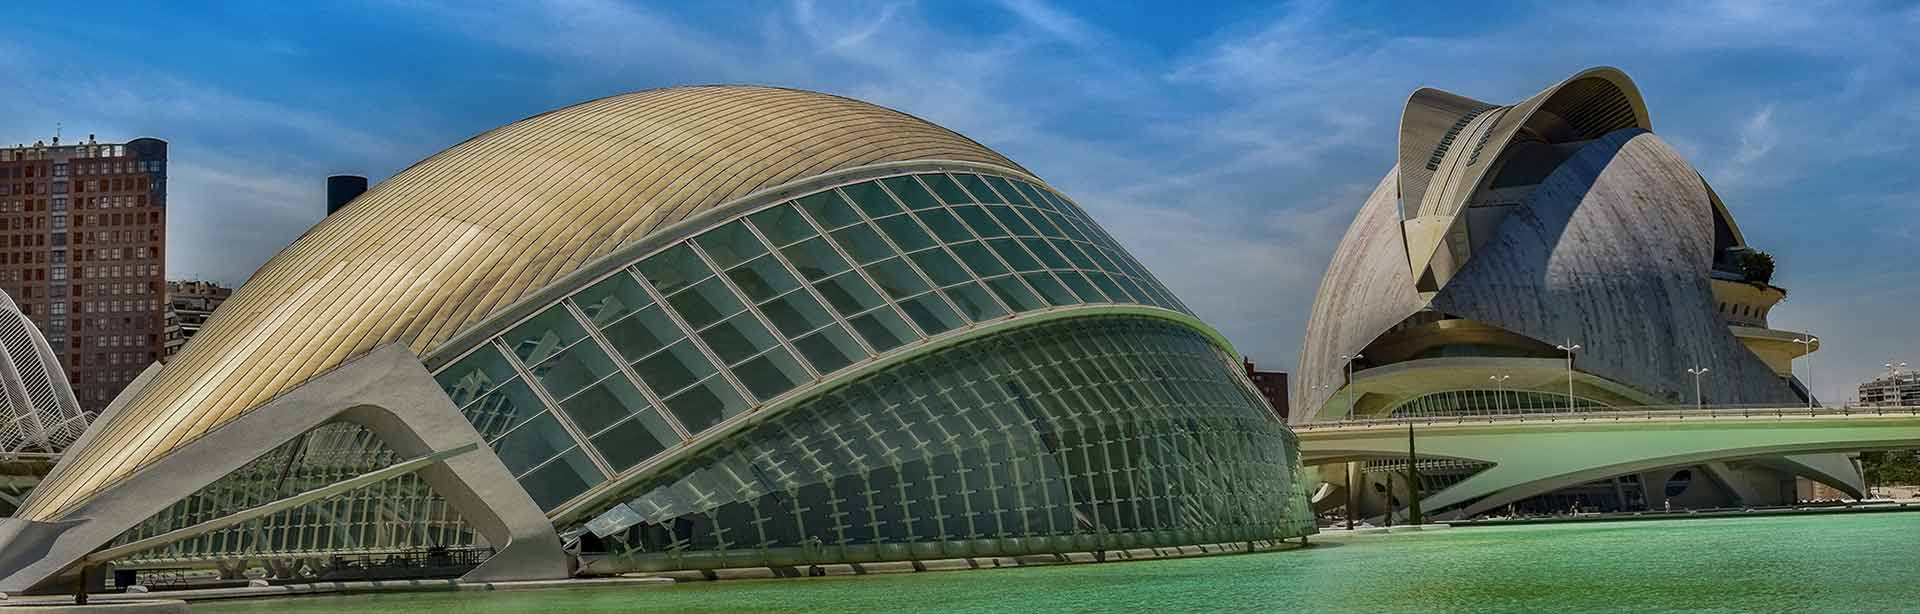 Science Museum in the city of Valencia, Spain